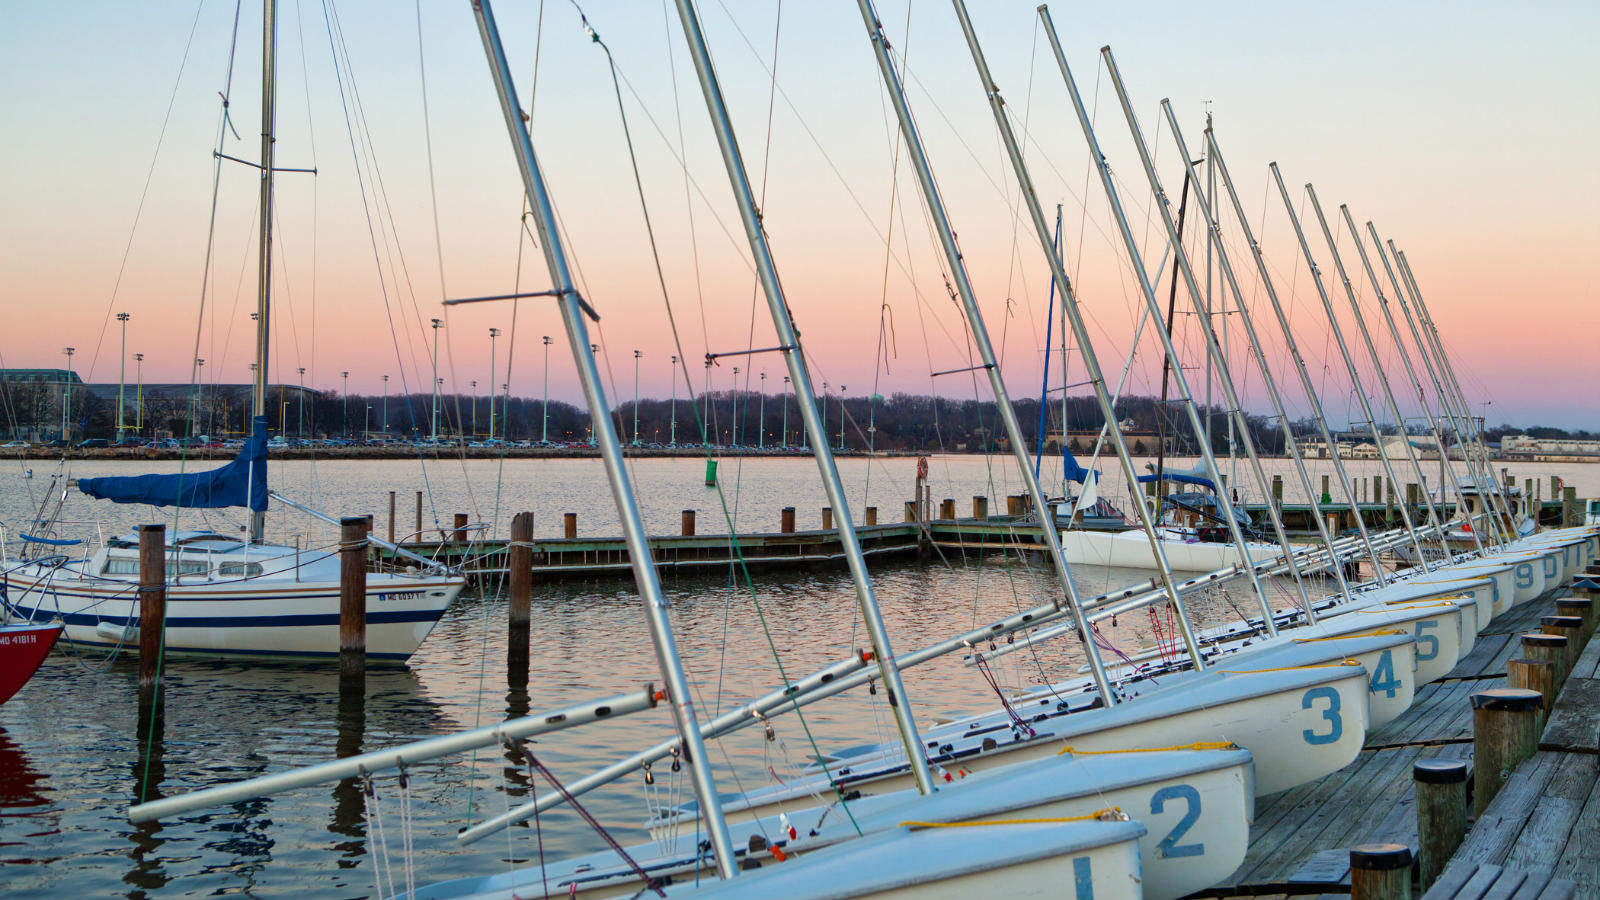 Hotels near Annapolis Harbor